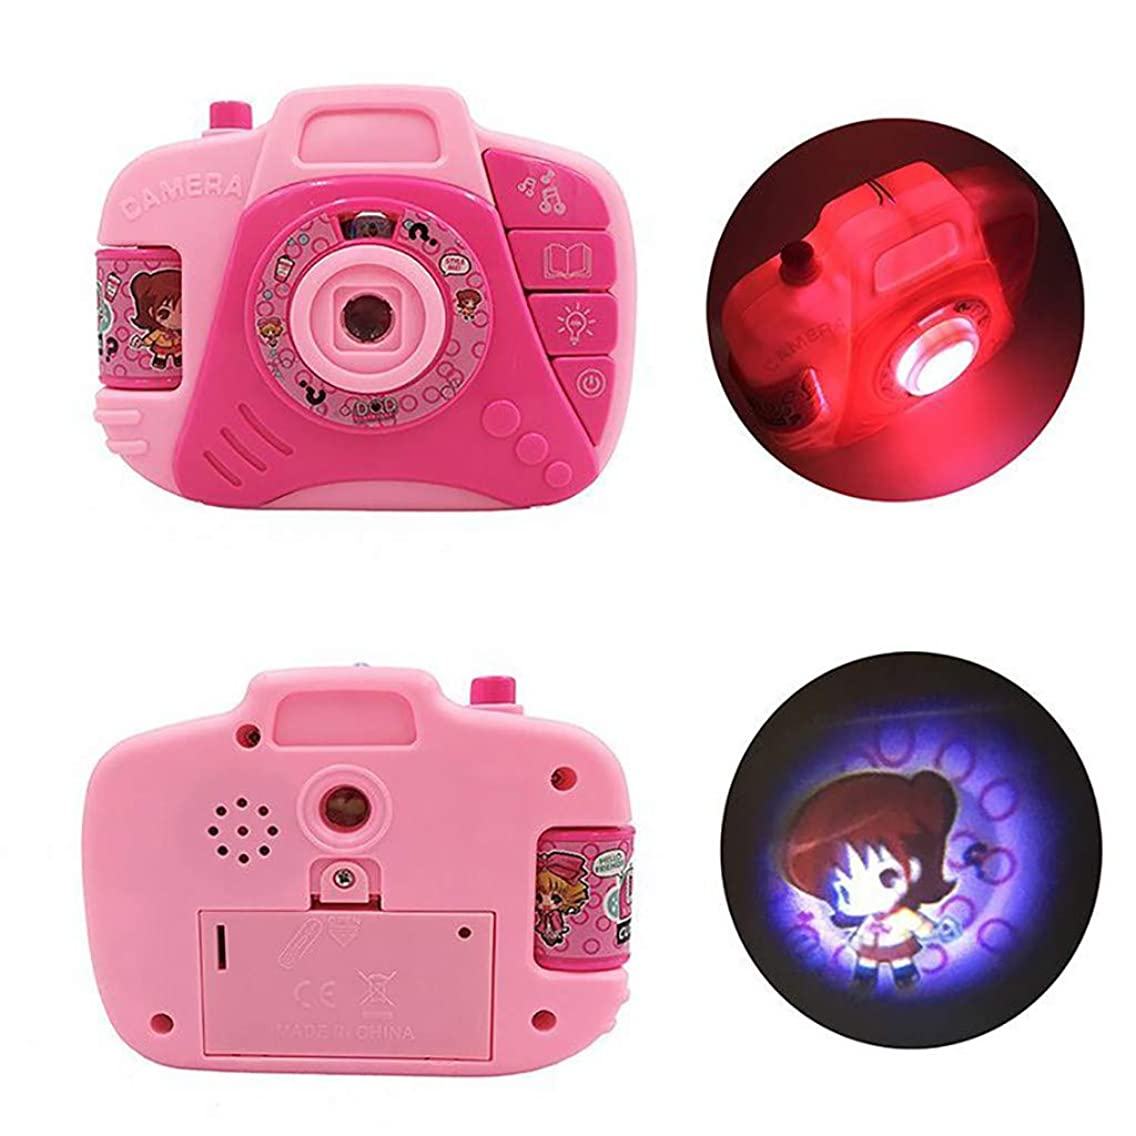 ?????Sttech1 Camera Toy Projection Simulation Cartoon Digital Camera Shockproof Children Educational Gift